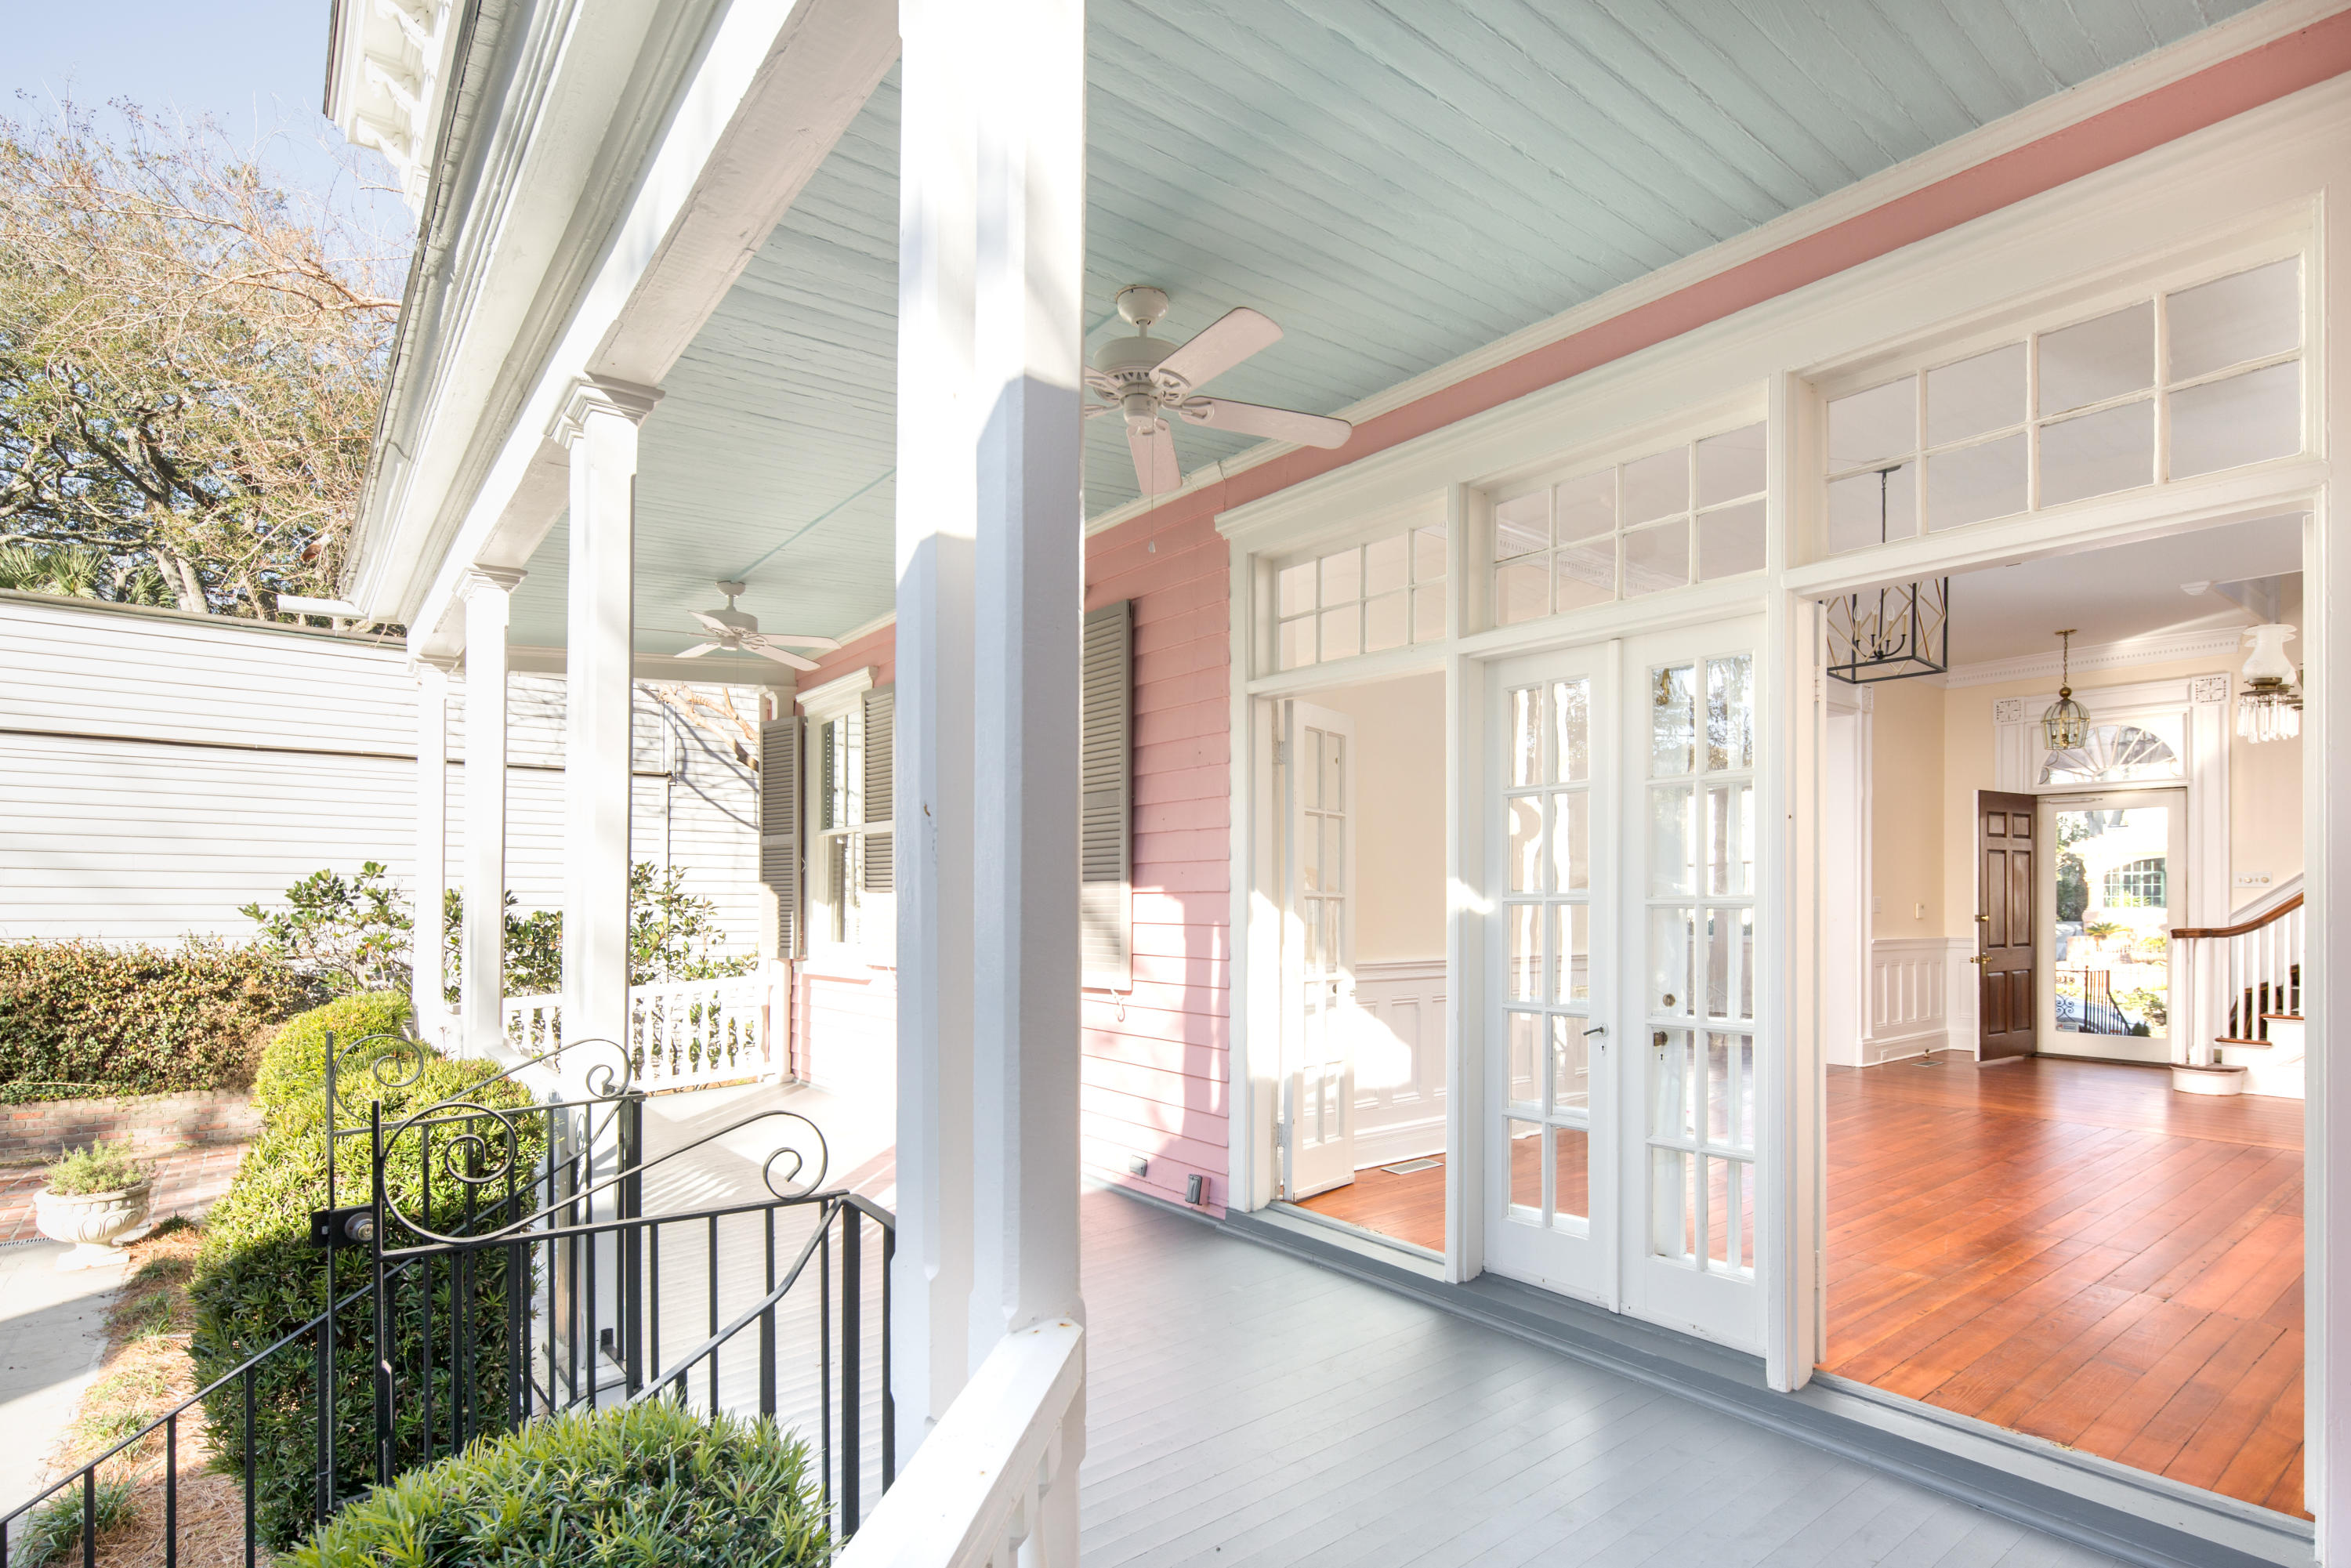 South of Broad Homes For Sale - 47 South Battery, Charleston, SC - 1